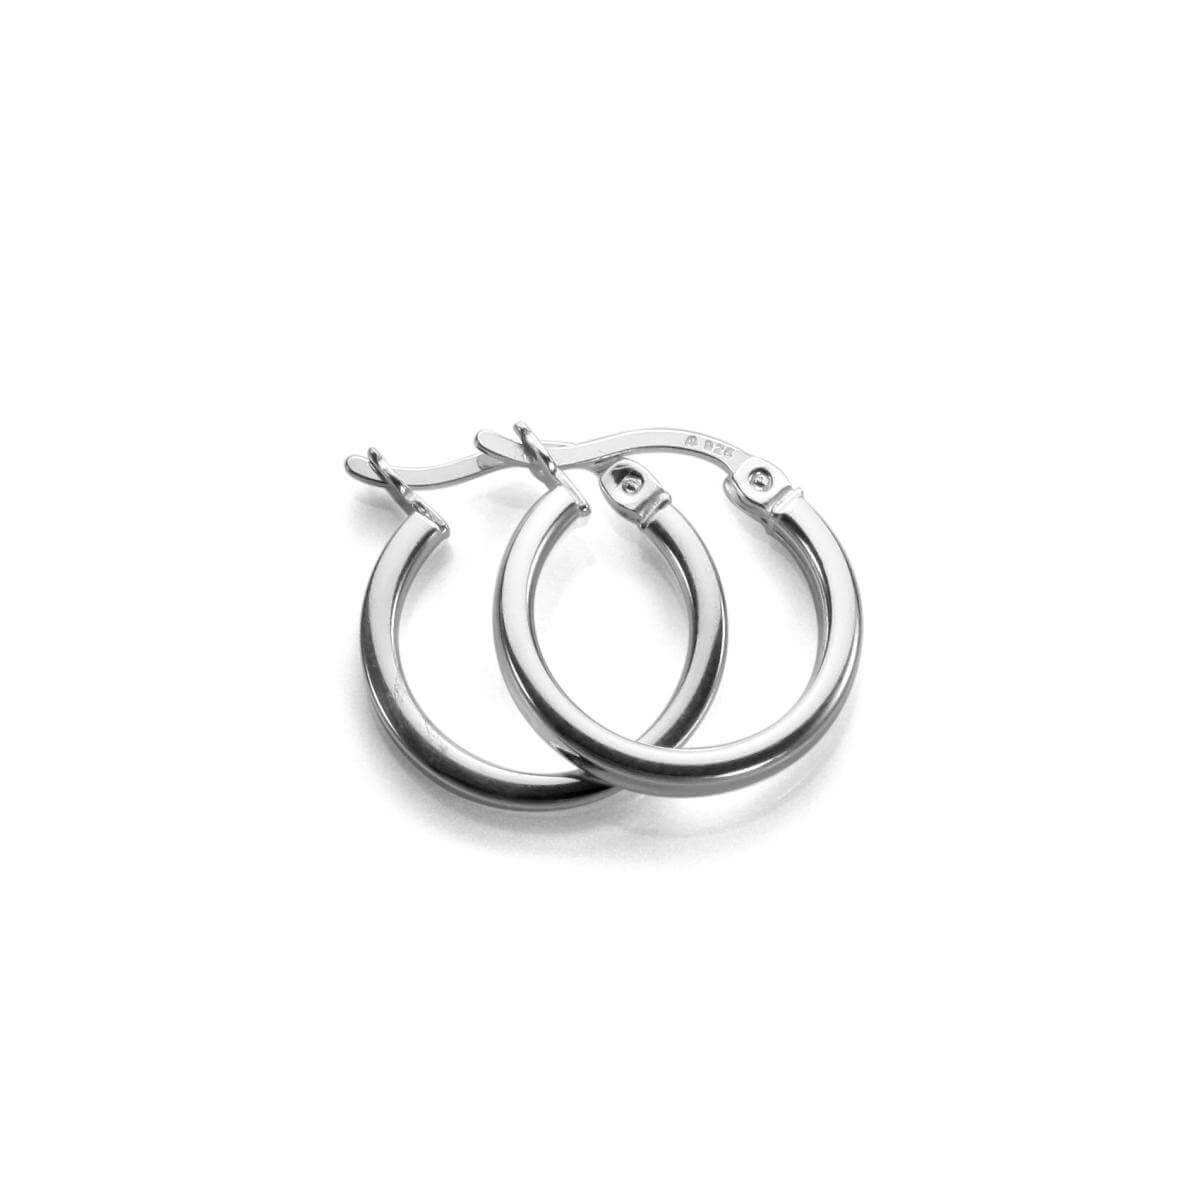 Sterling Silver 12mm Square Tube Hoop Earrings